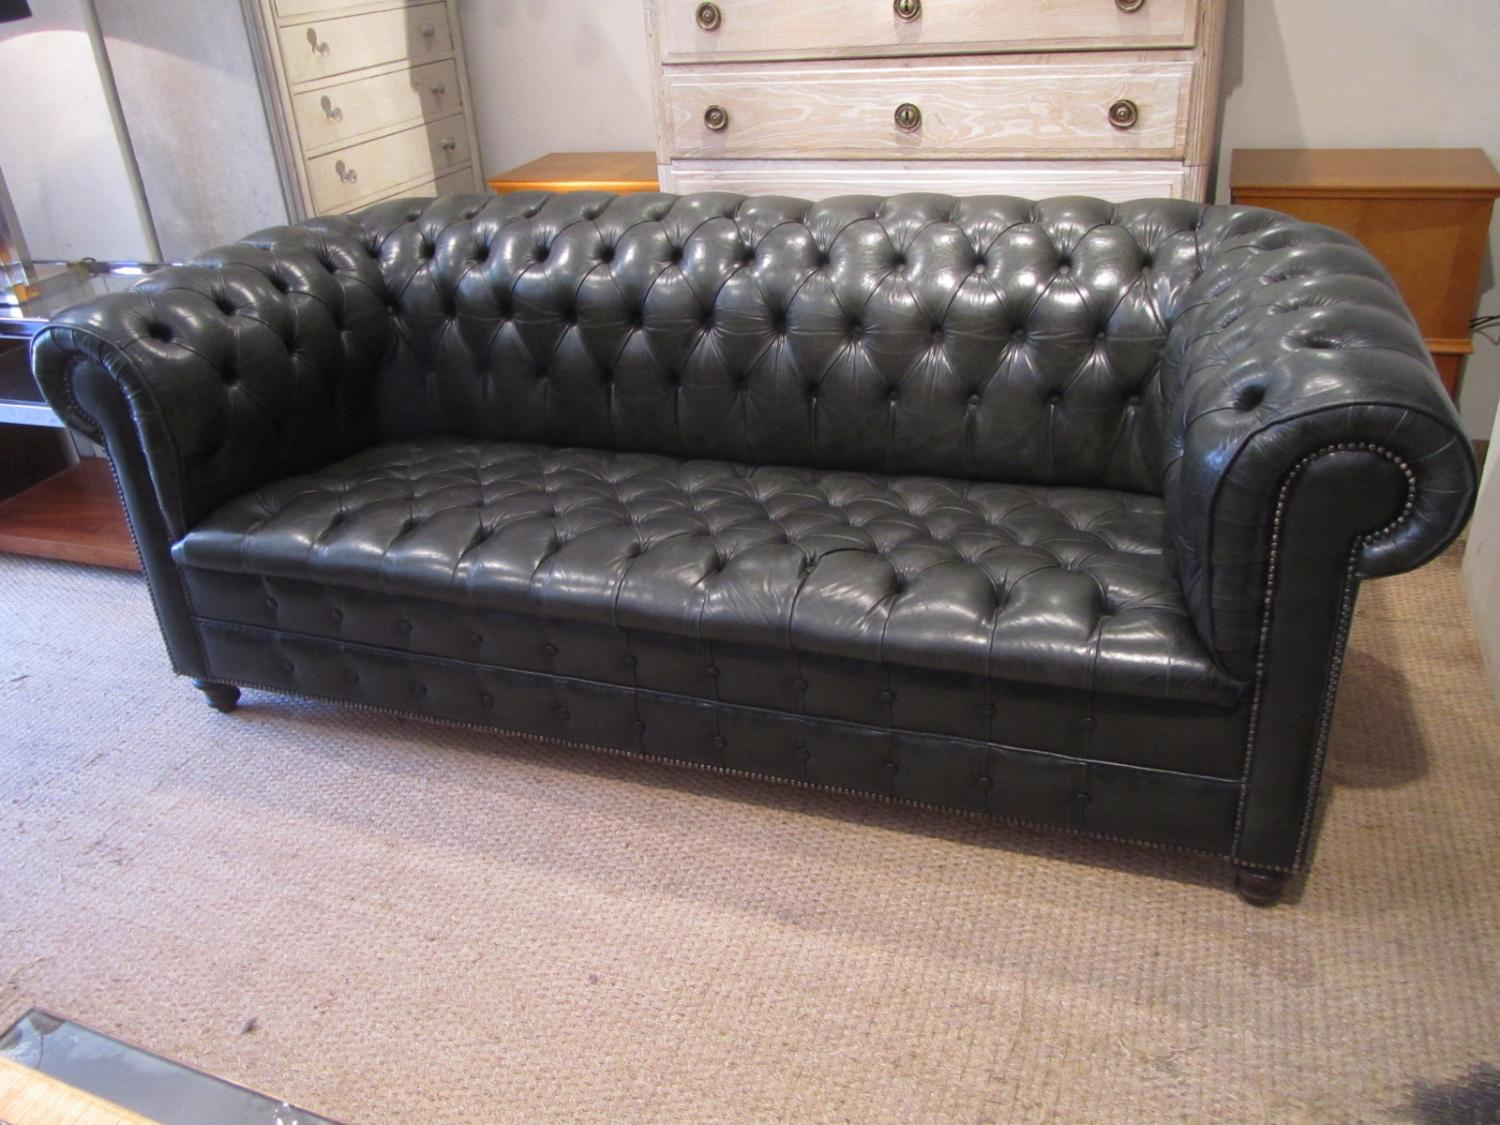 A Fully Buttoned Leather Chesterfield Sofa In Seating